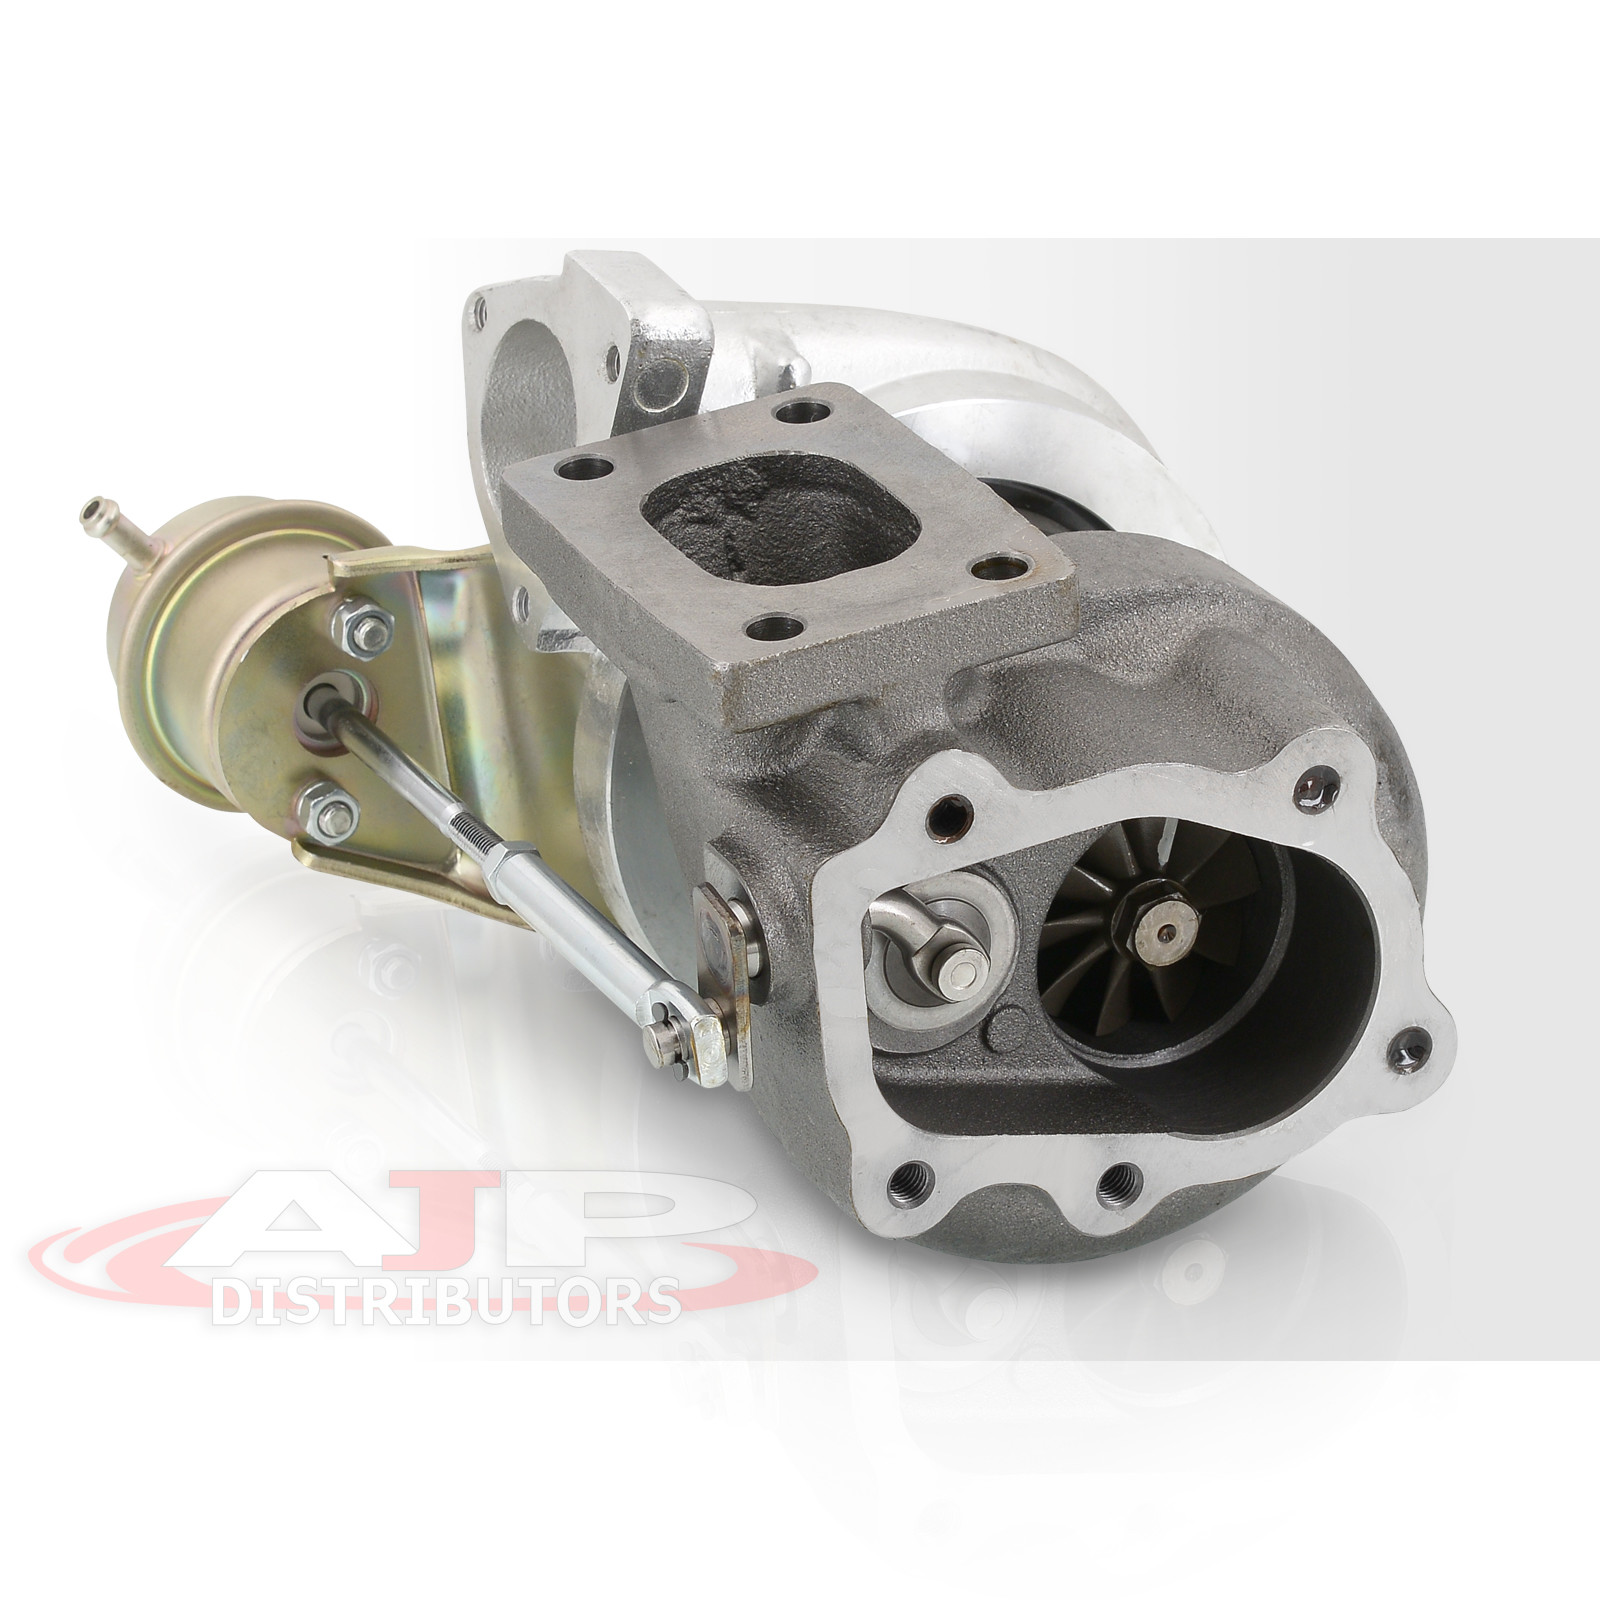 300zx Turbo Horsepower: T25 T25/T28 Turbo + Internal Wastegate Actuator For All